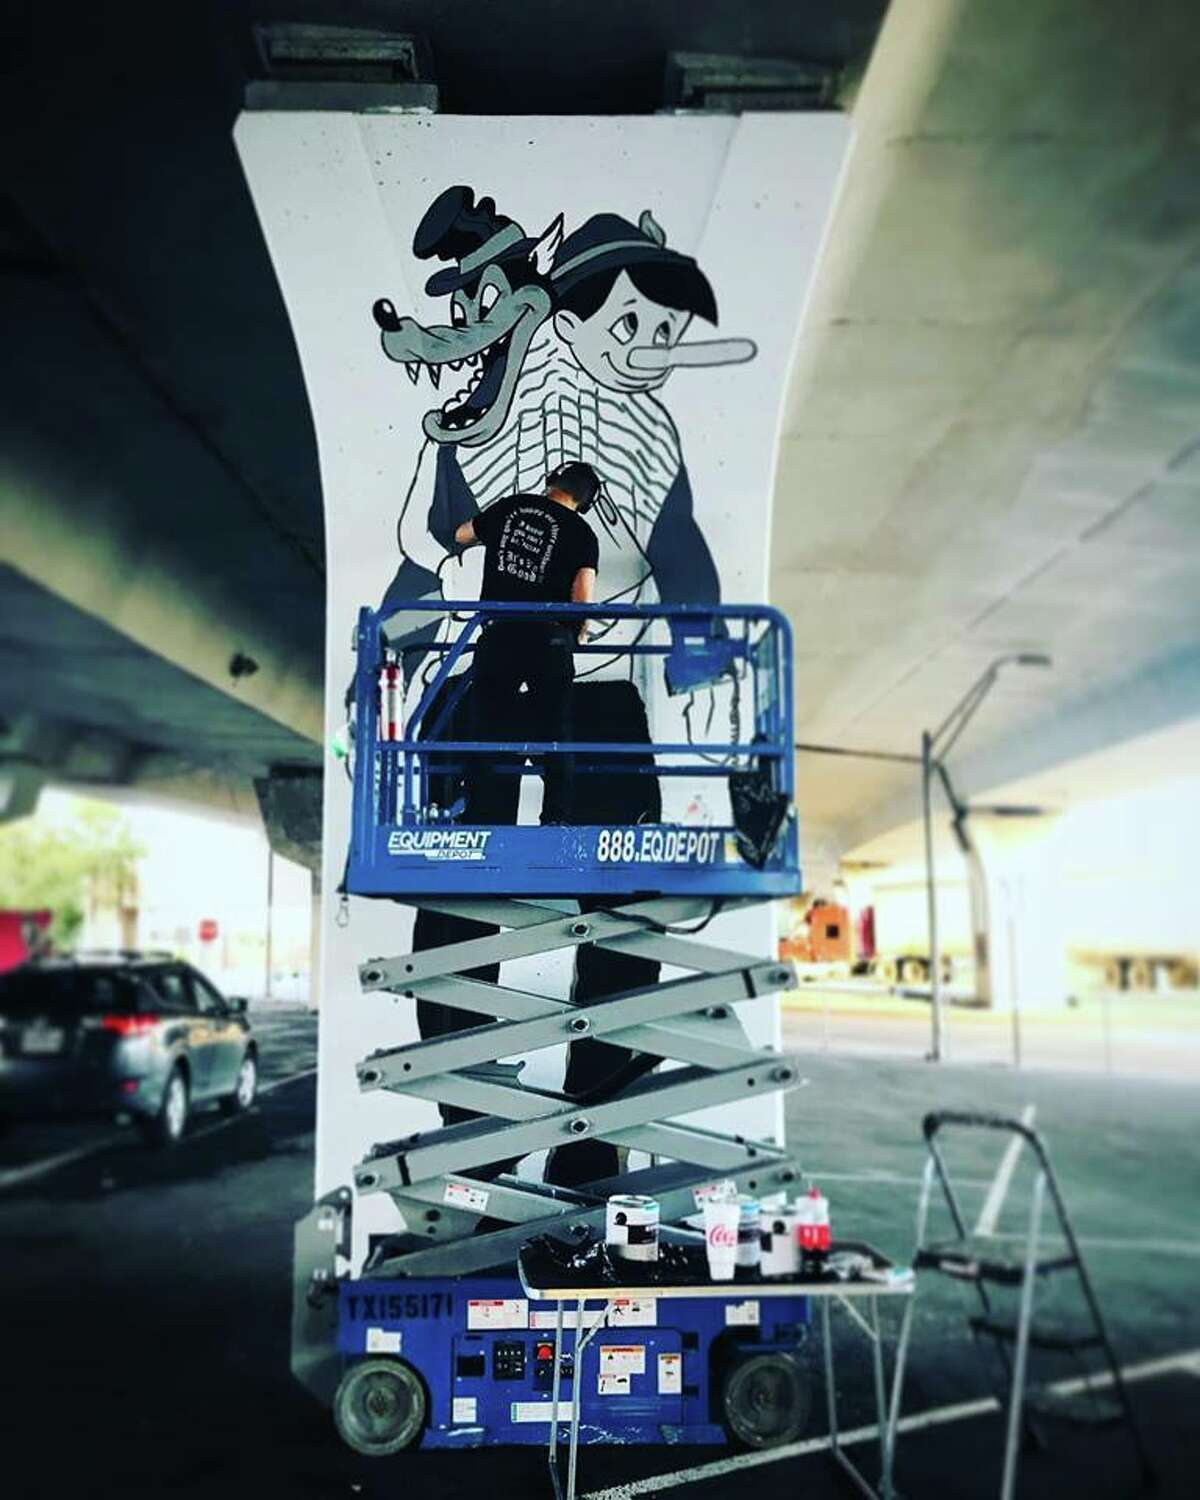 The first phase 1 of the San Antonio Street Art Initiative is a Nov. 3 unveiling of 16 murals by 16 local artists at the Interstate 35 underpass where Quincy and St. Mary's streets meet.